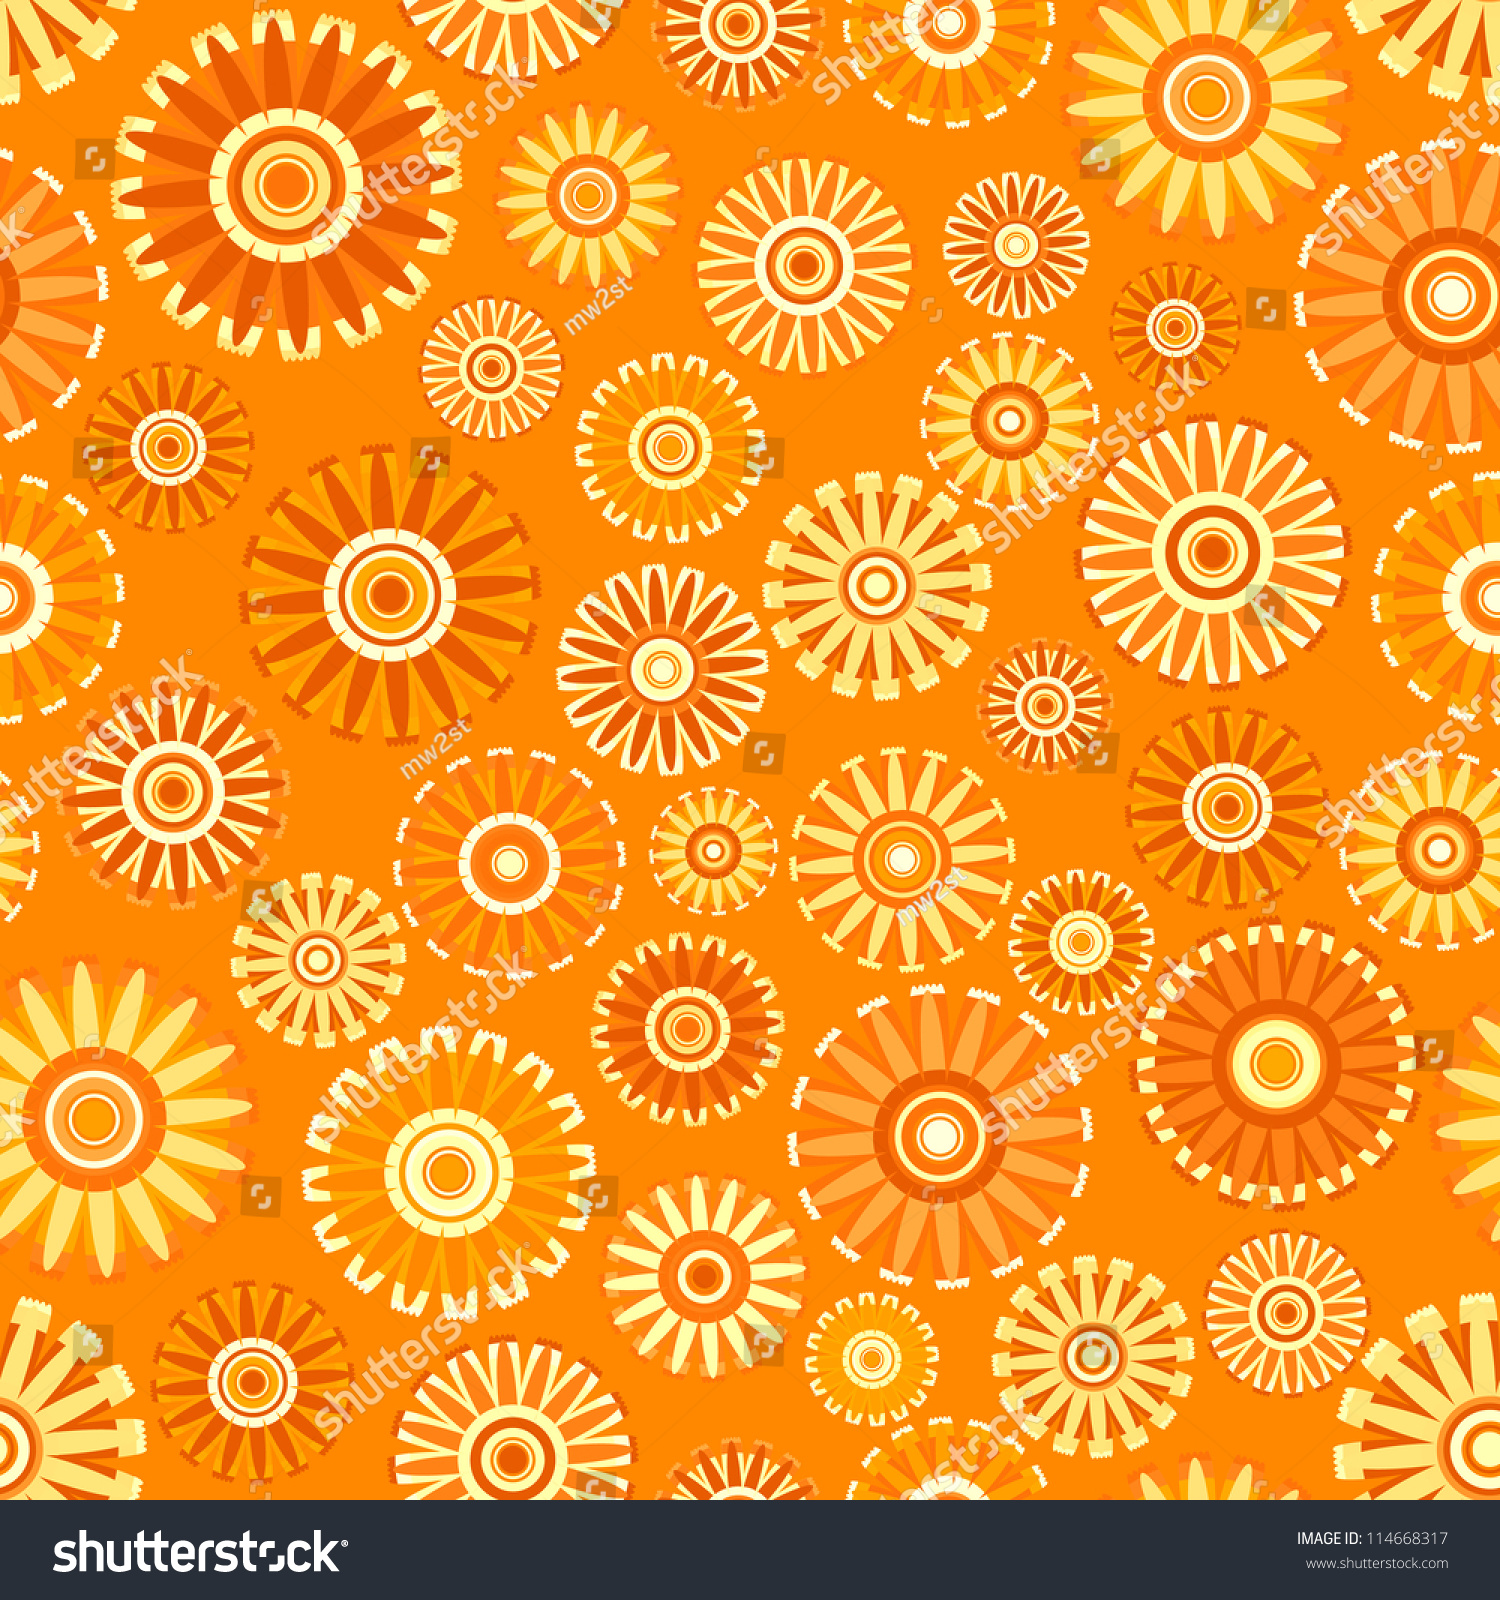 Vintage Flower Seamless (Orange Floral